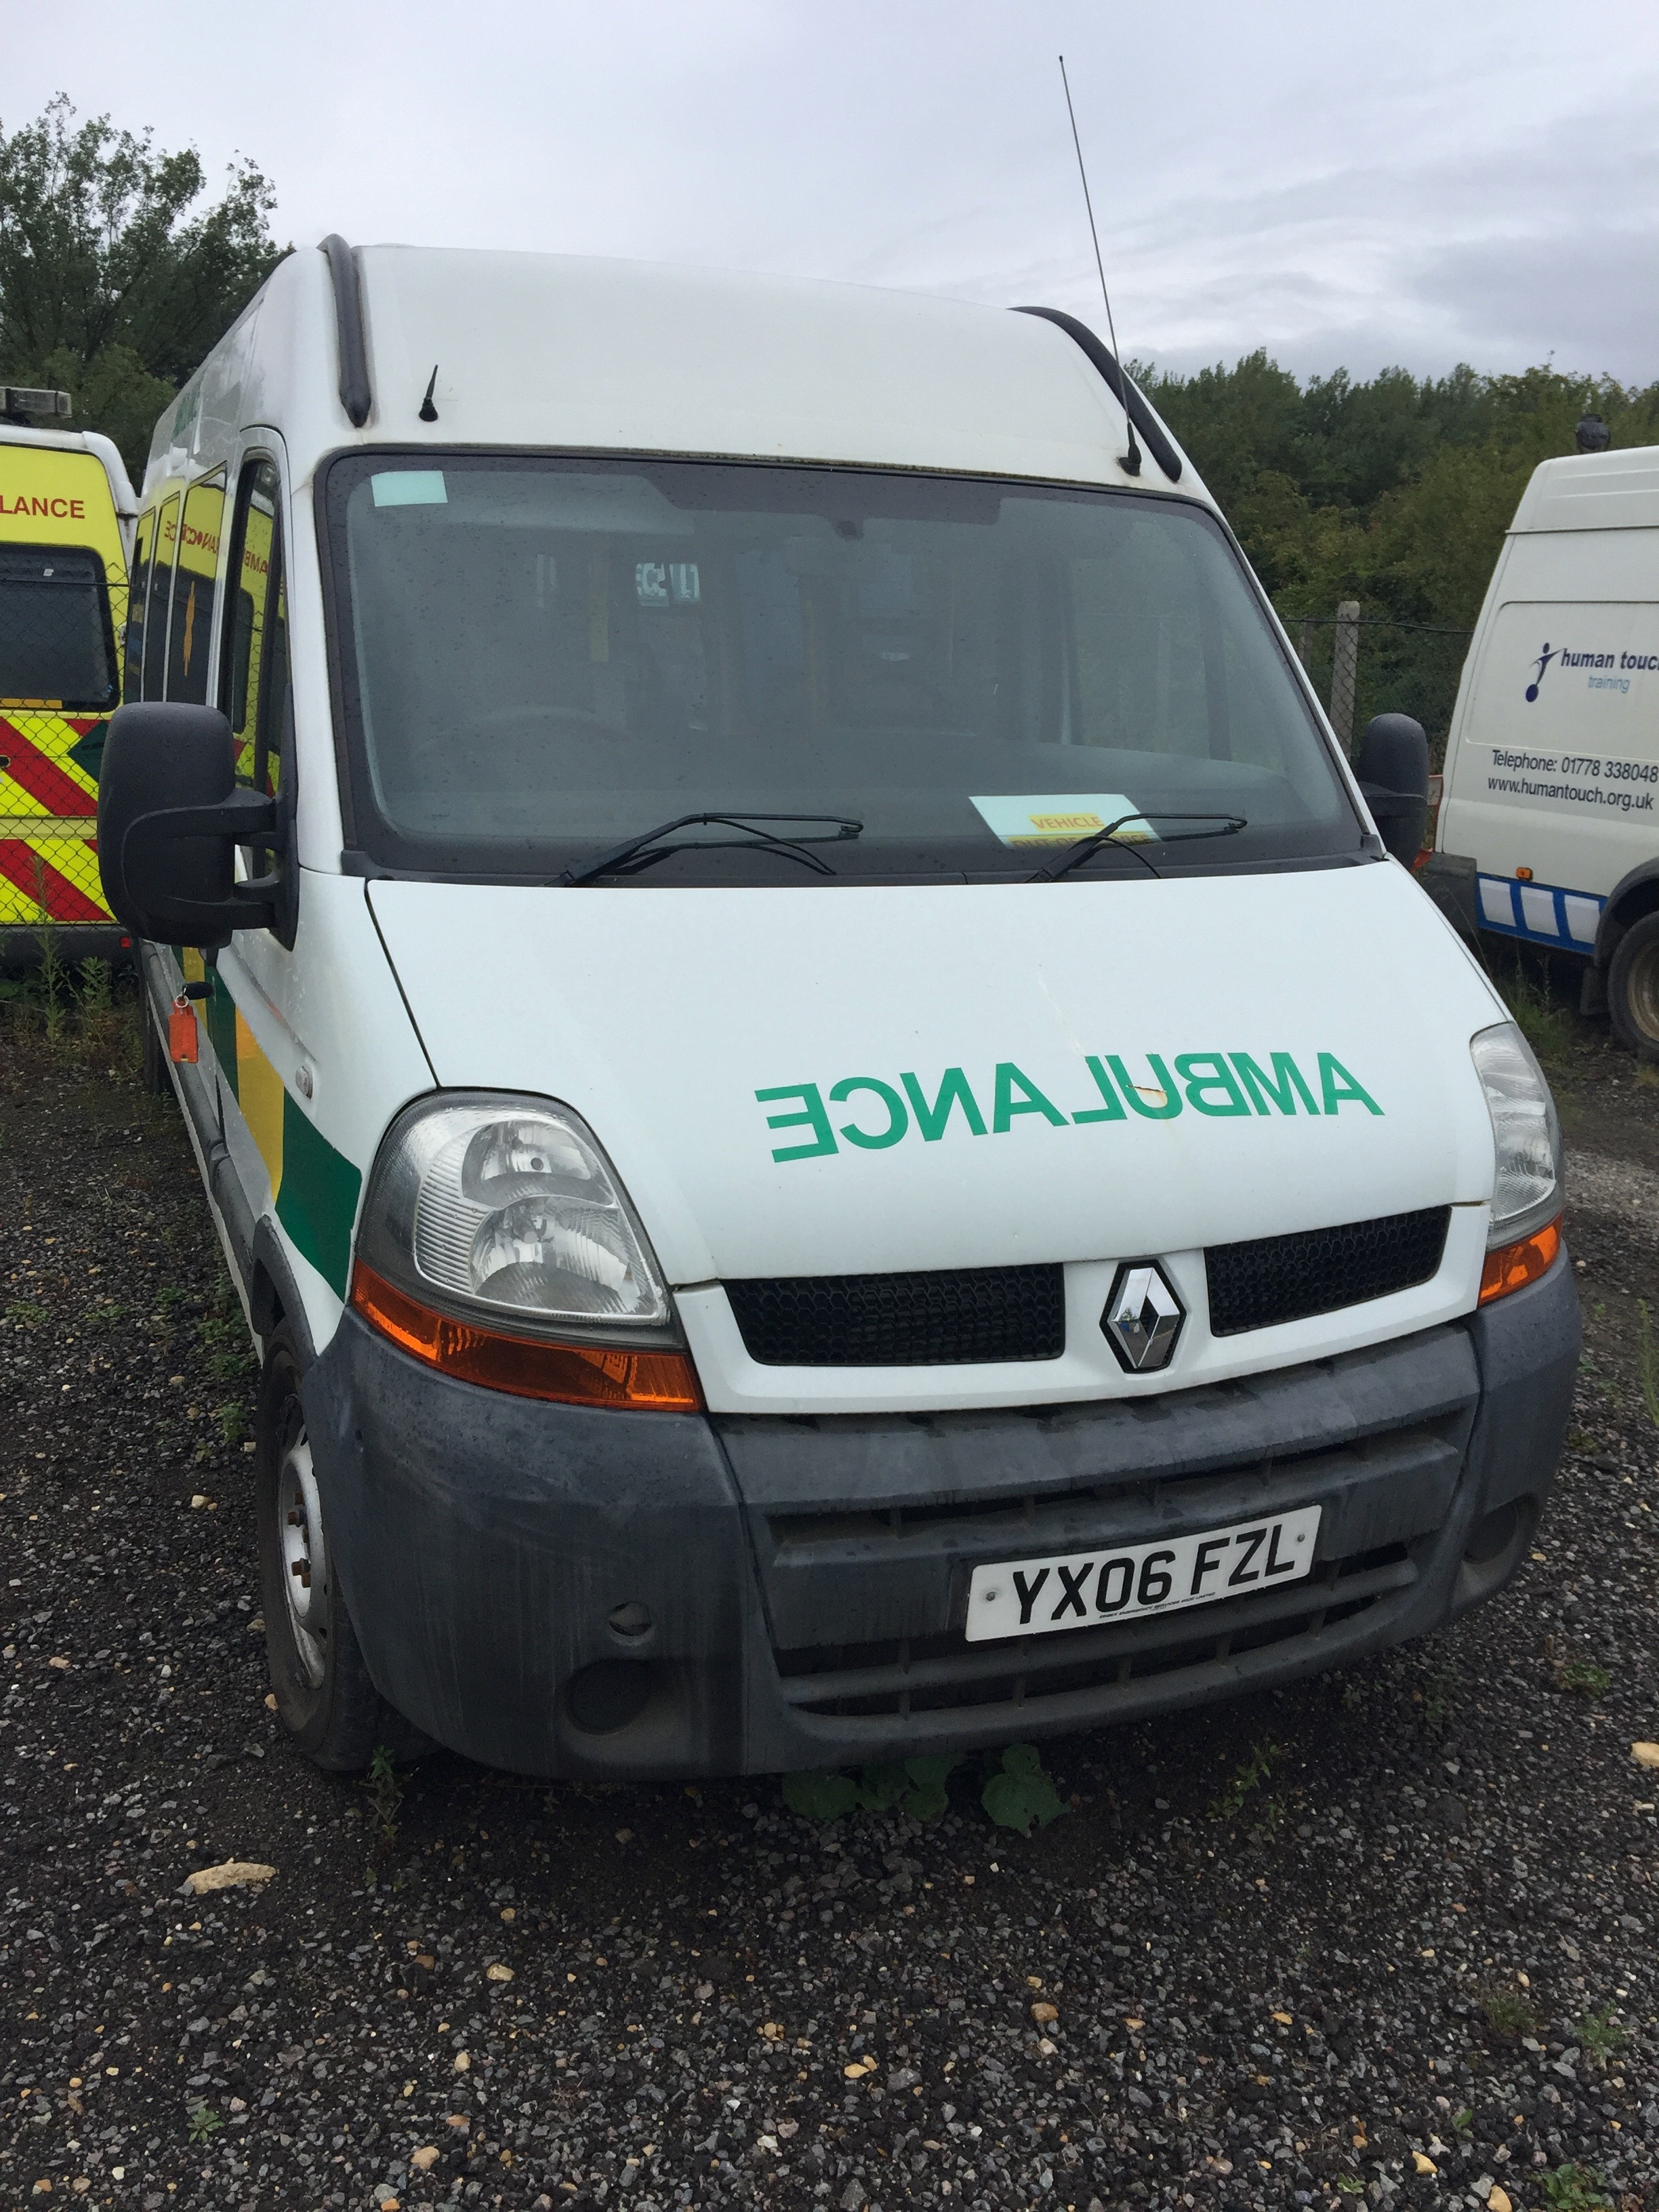 Lot 10 - Renault Master standard body patient transfer ambulance Registration No YX06 XZL, recorded miles